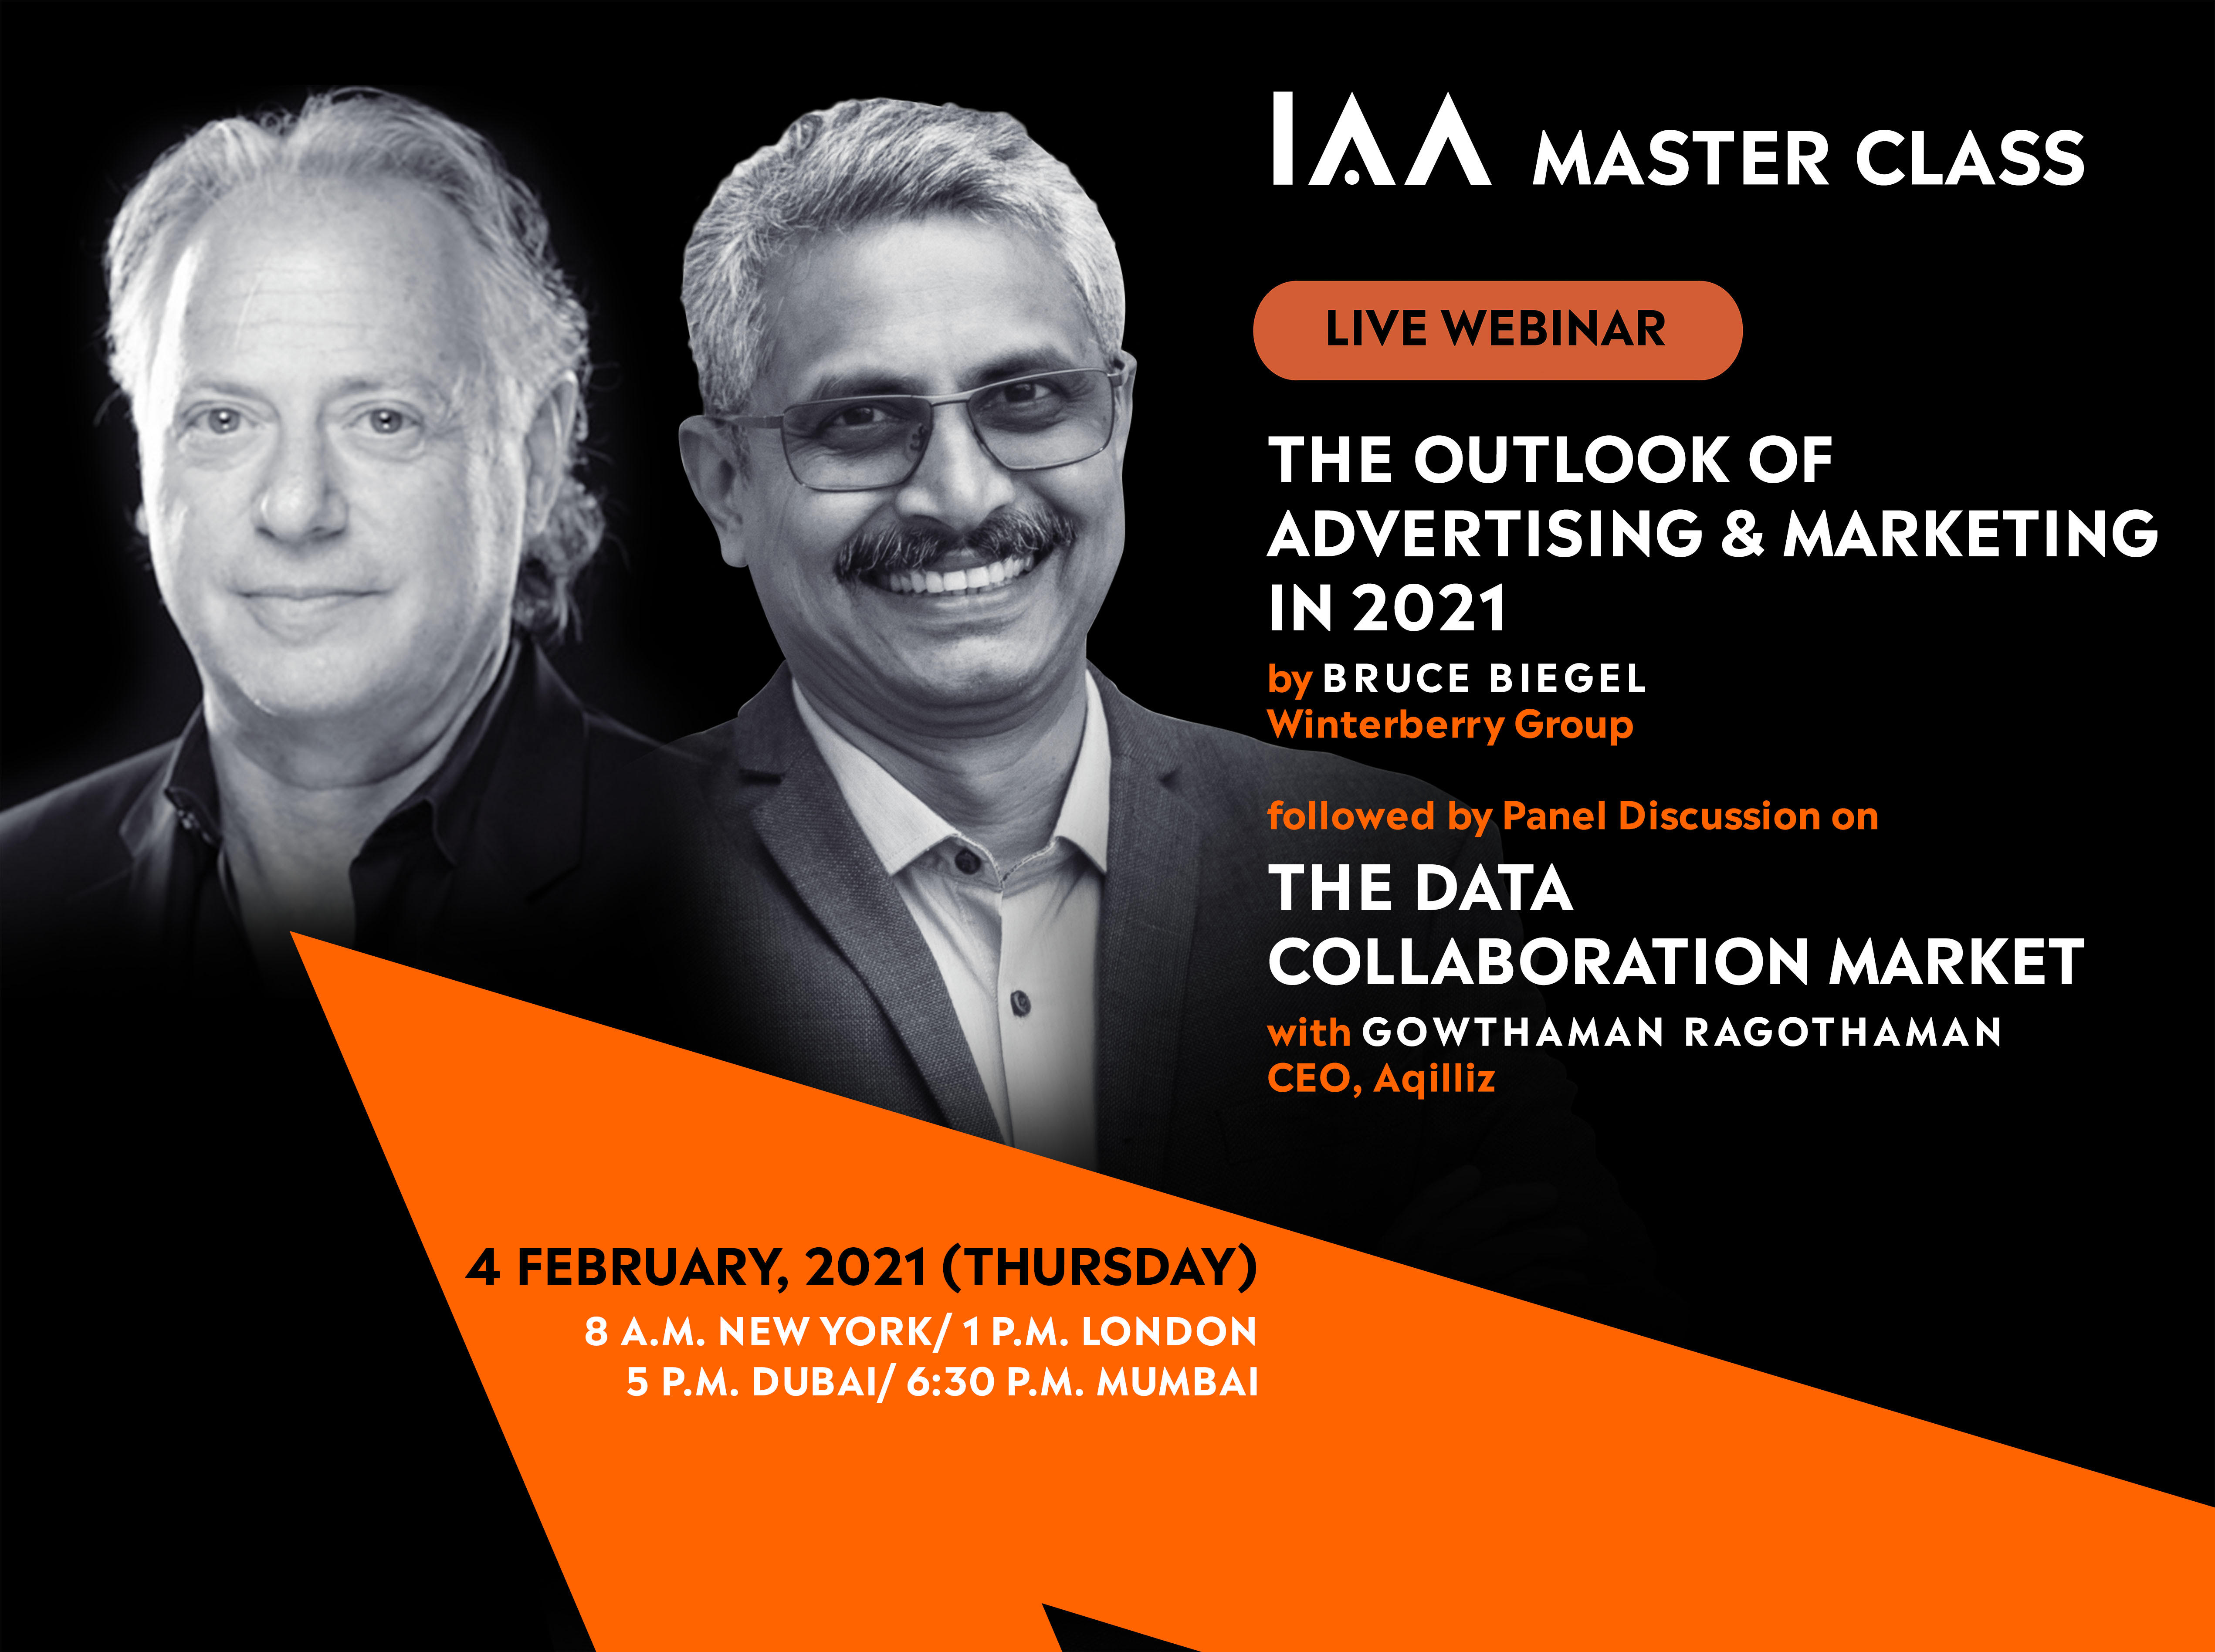 The Outlook of Advertising and Marketing in 2021